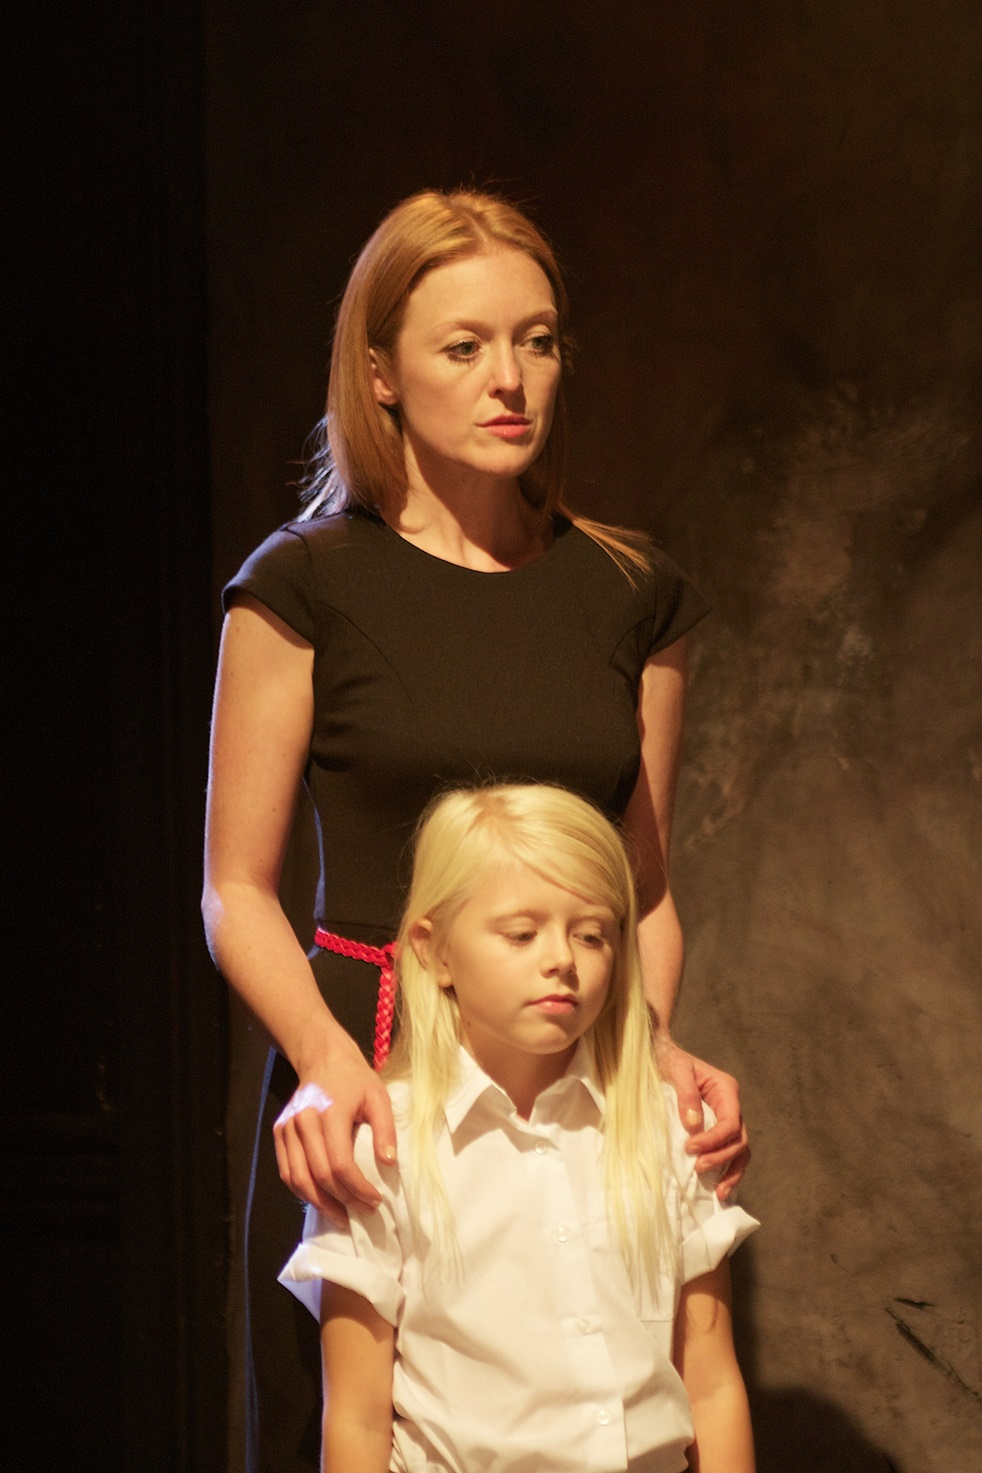 Actresses: Tilly Gaunt & Abigail Cole Jarvie Photograph:  stageshotslondon@gmail.com